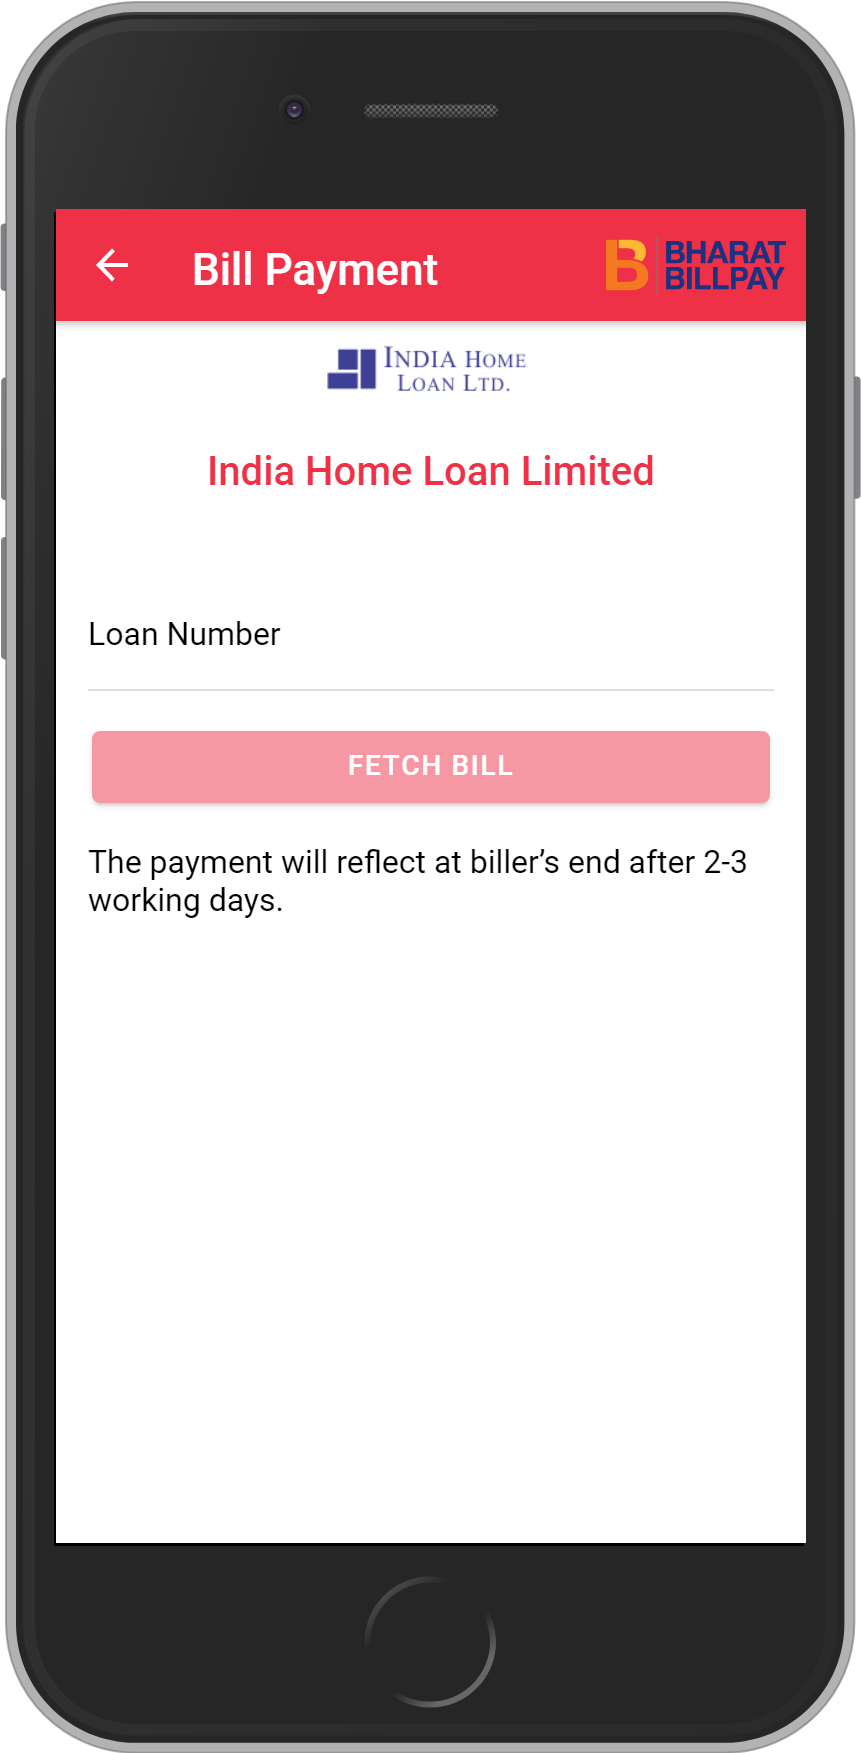 Get UNLIMITED <b>0.1%</b> CASHBACK on India Home Loan Limited Loan Payment.